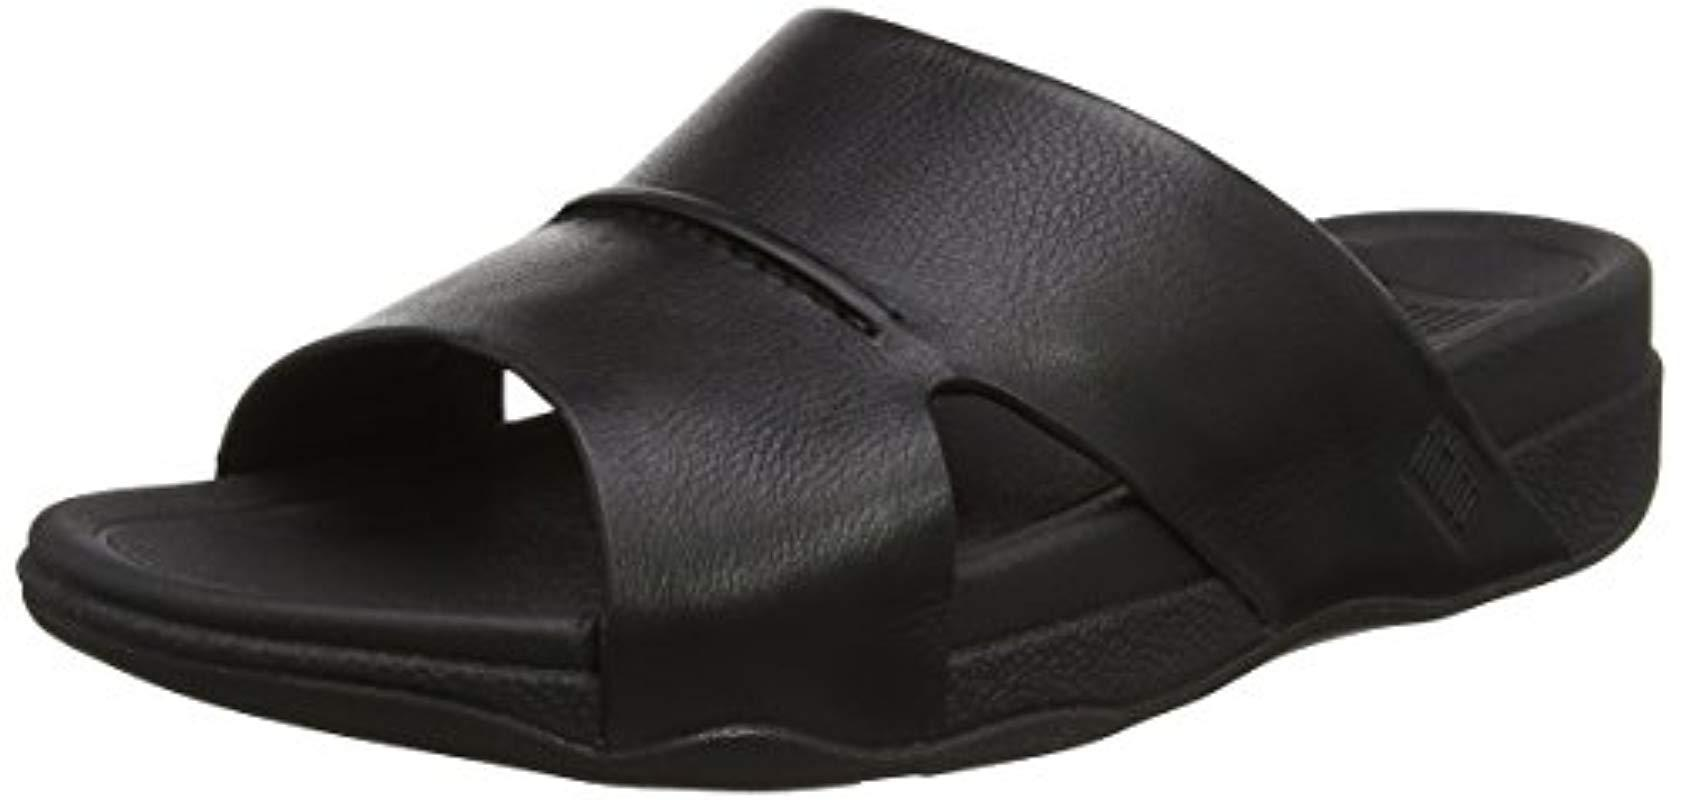 487832324703e9 Fitflop  s Bando Leather Slides Open-toe Sandals in Black for Men - Lyst